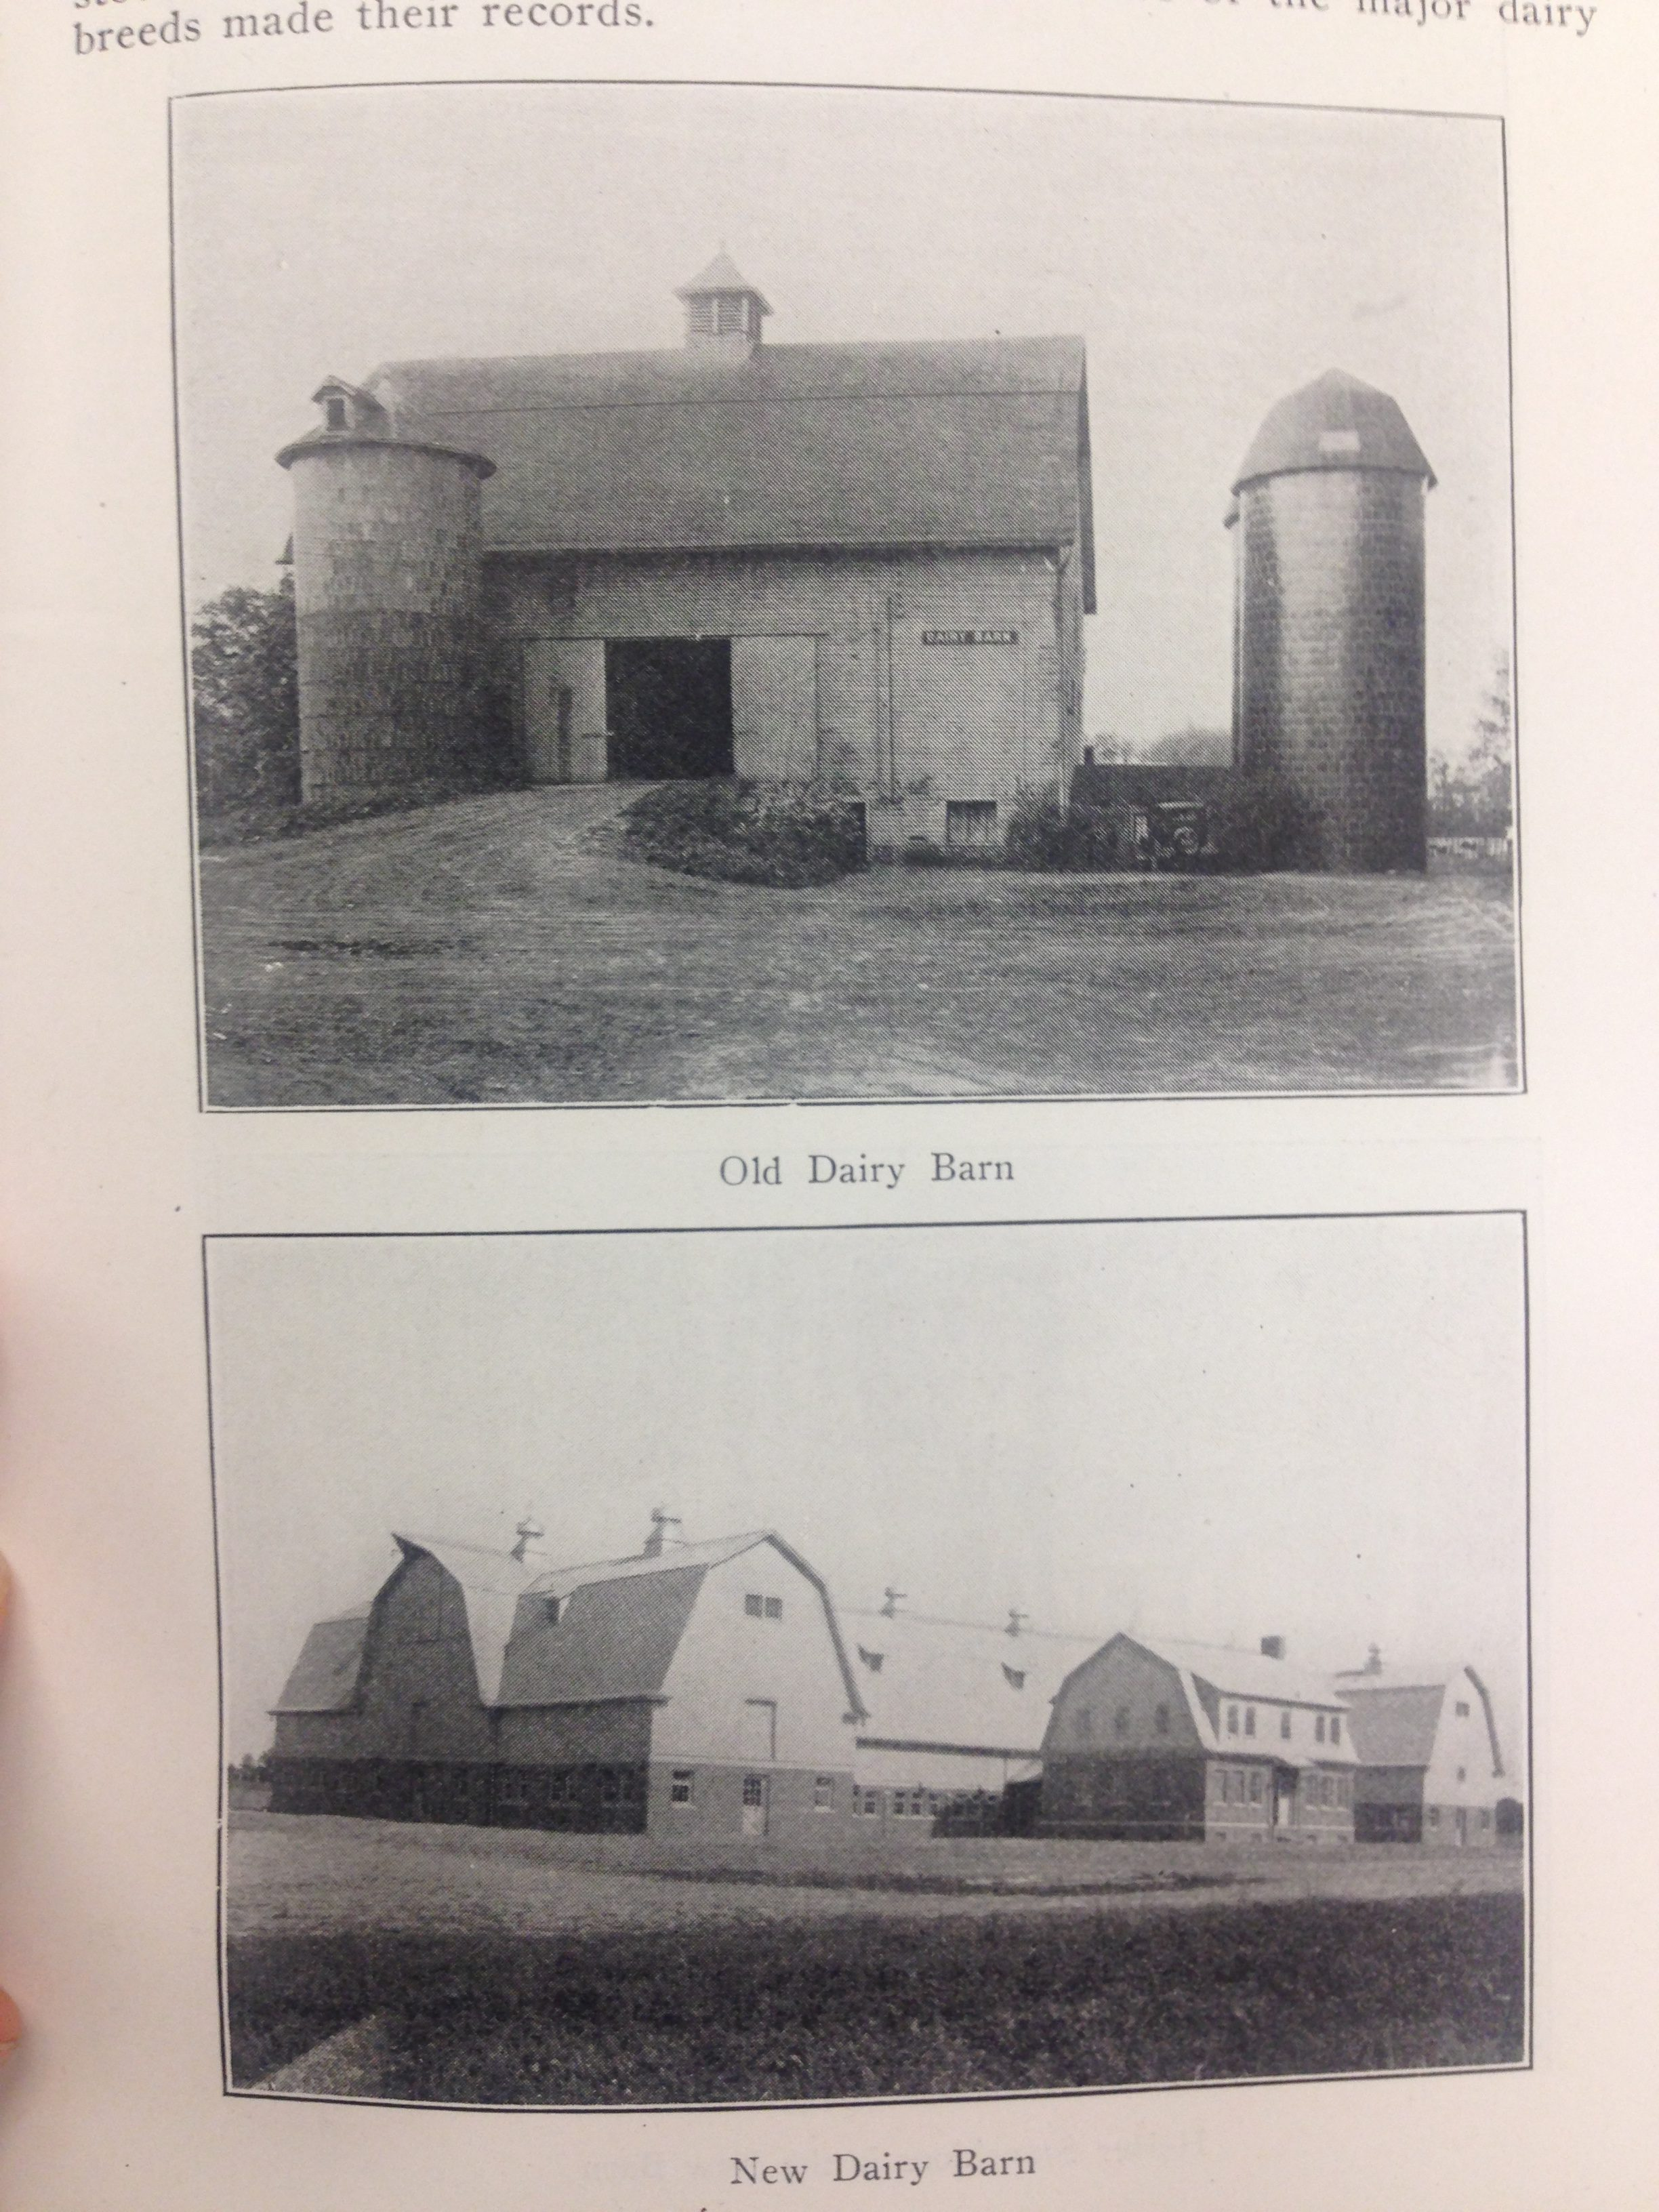 Stupendous The Udderly Legen Dairy History Of Dairying At Msu Part I Download Free Architecture Designs Aeocymadebymaigaardcom